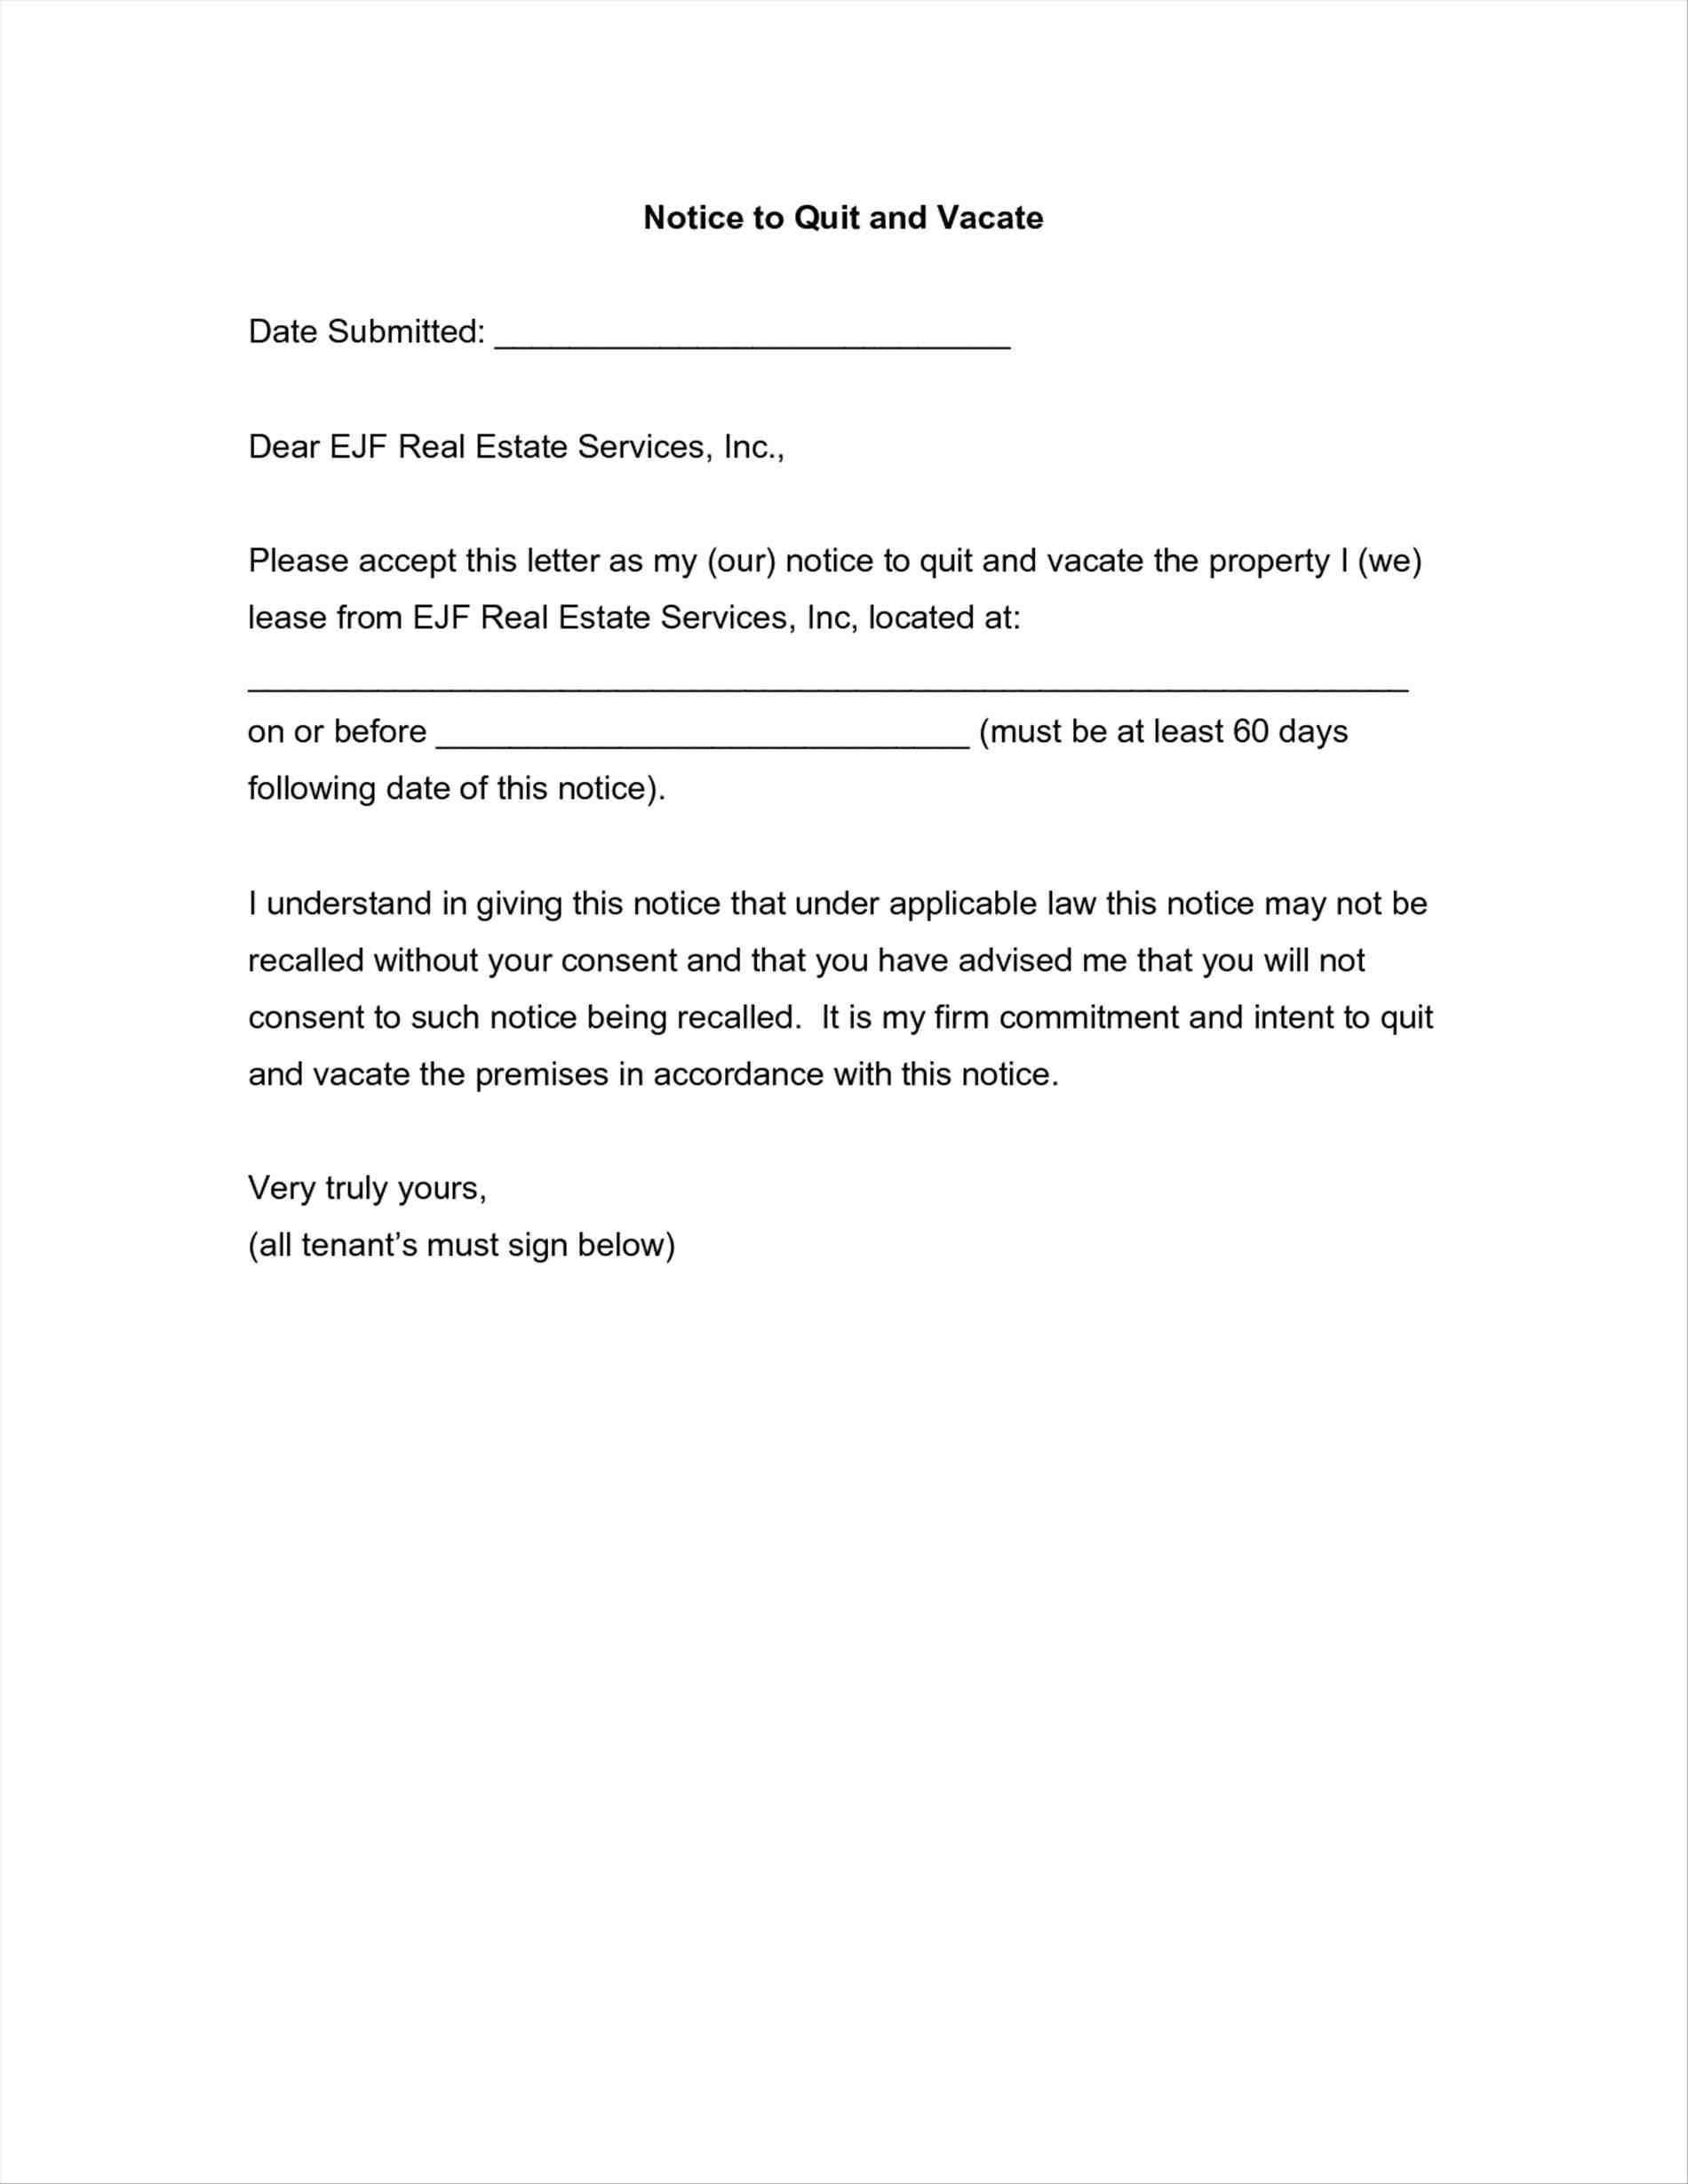 Notice to Vacate Apartment Letter Template - 60 Day Notice Apartment Template